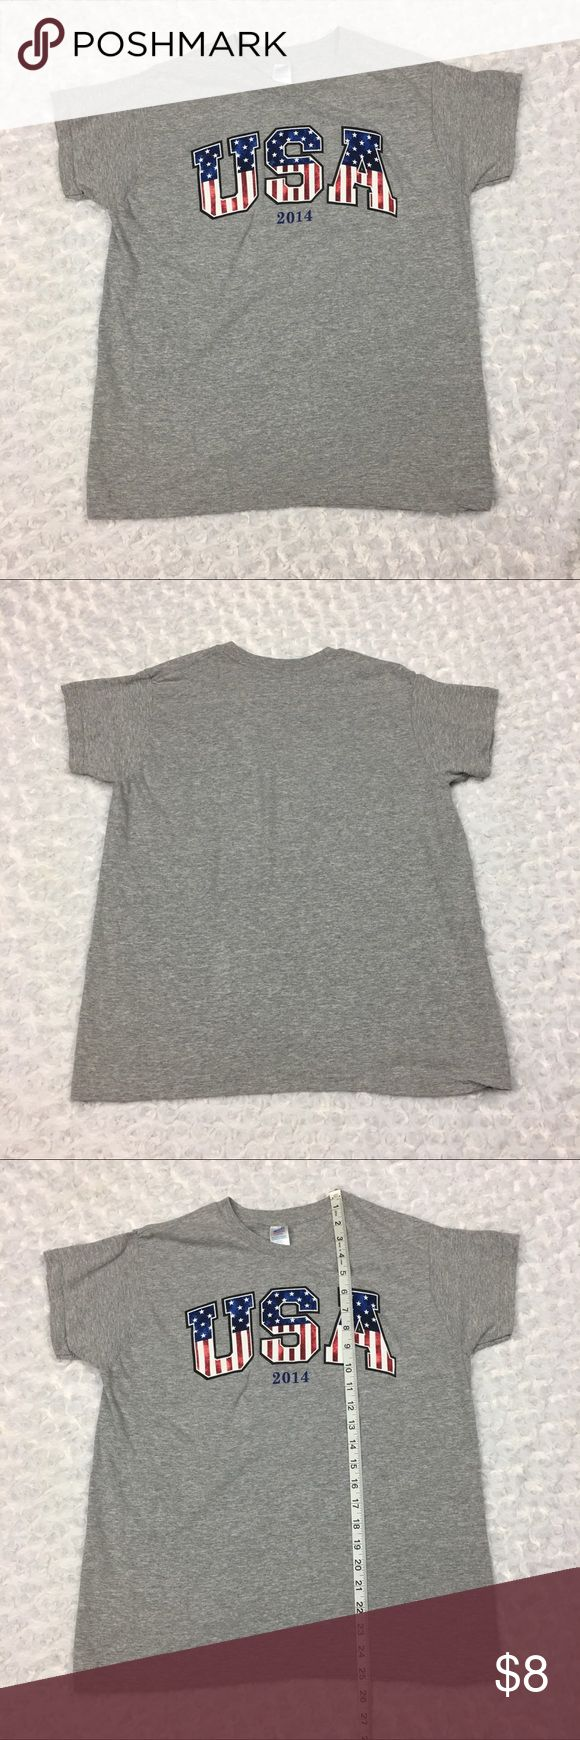 USA Year 2014 Graphic Gray Shortsleeve Tshirt Top Womens Large 12-14 USA Year 2014 Graphic Gray Grey Tshirt Top  Size: Womens Large 12/14. SEE PHOTOS FOR MEASUREMENTS  Condition: Gently used.  * This listing is for ONE (1) Top *   * See photos for measurements and more details *  Please note: Color may vary slightly due to different display screen calibrations.  [D-45] Made in USA Tops Tees - Short Sleeve